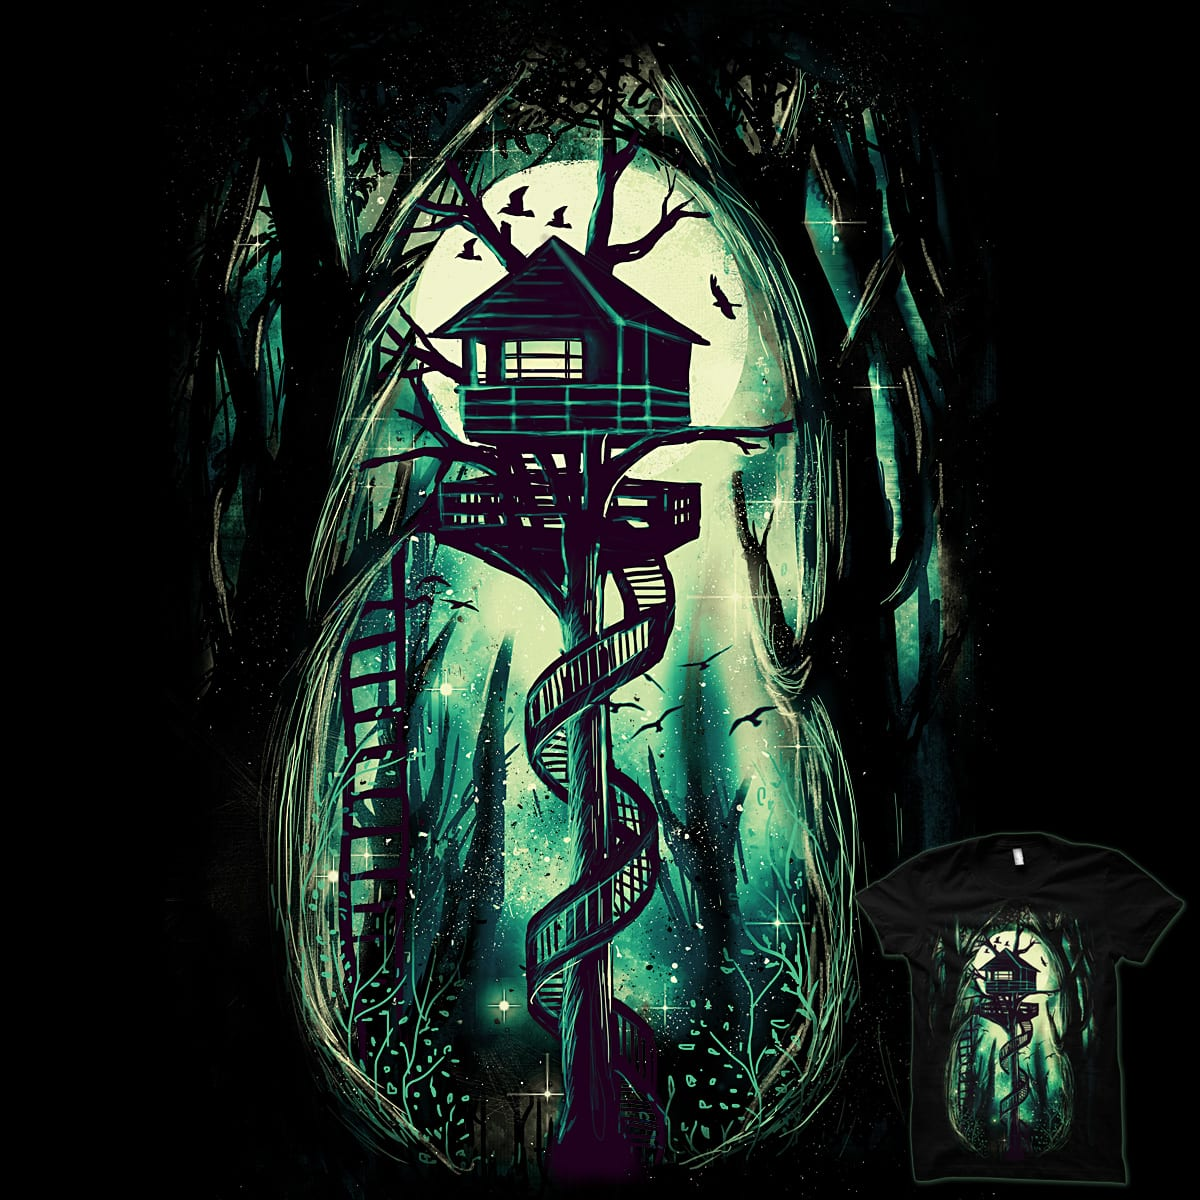 Magical Treehouse by pinkstorm on Threadless